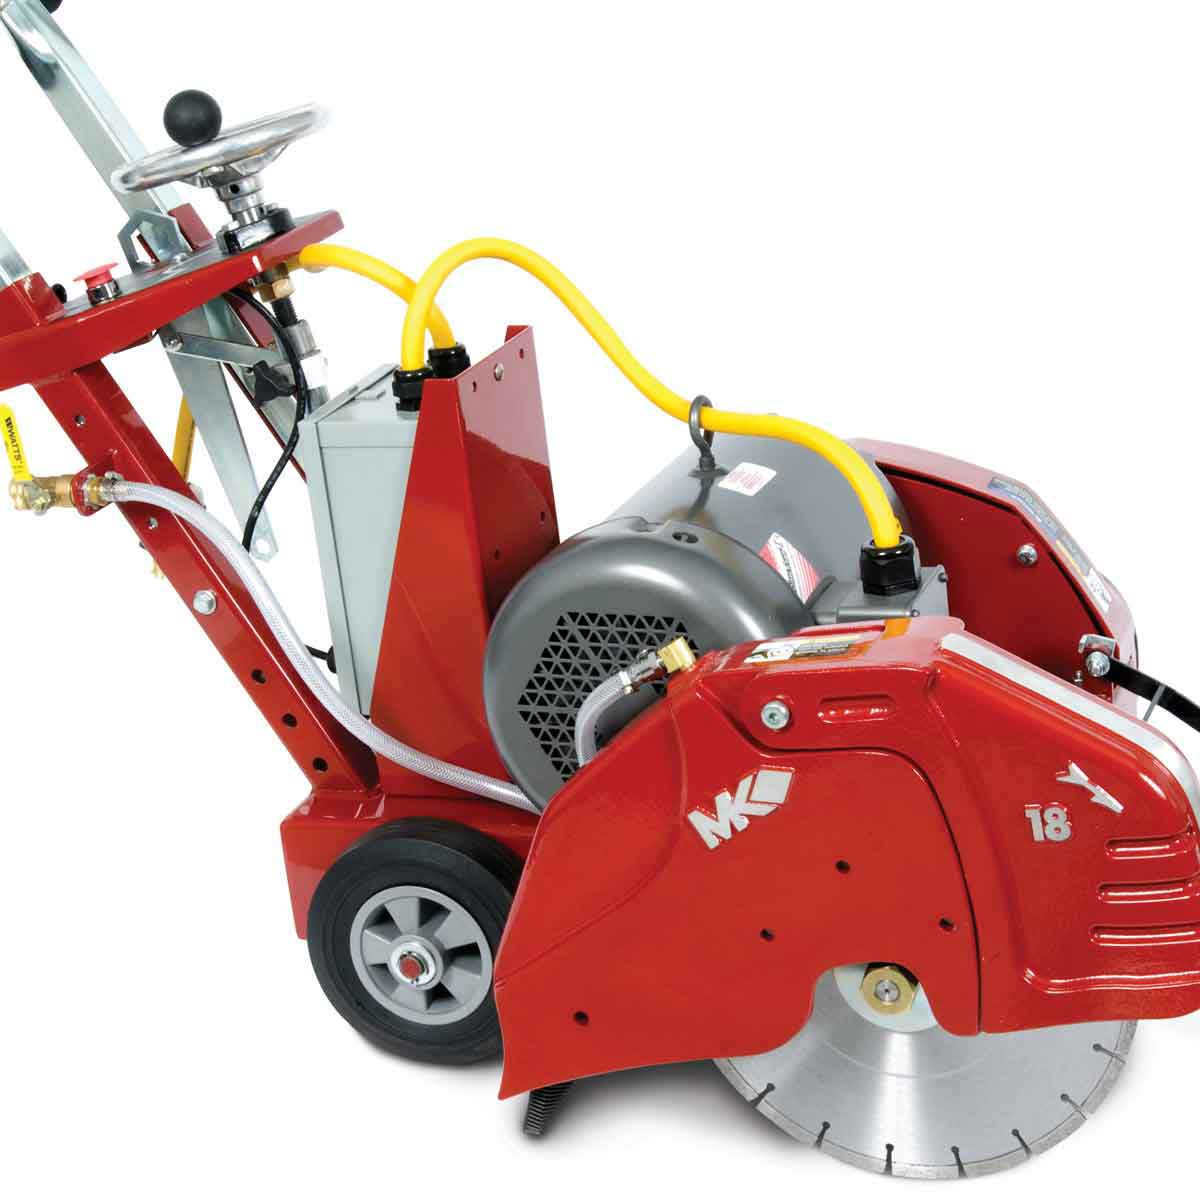 Mk 1600 Electric Walk Behind Concrete Saw Contractors Direct